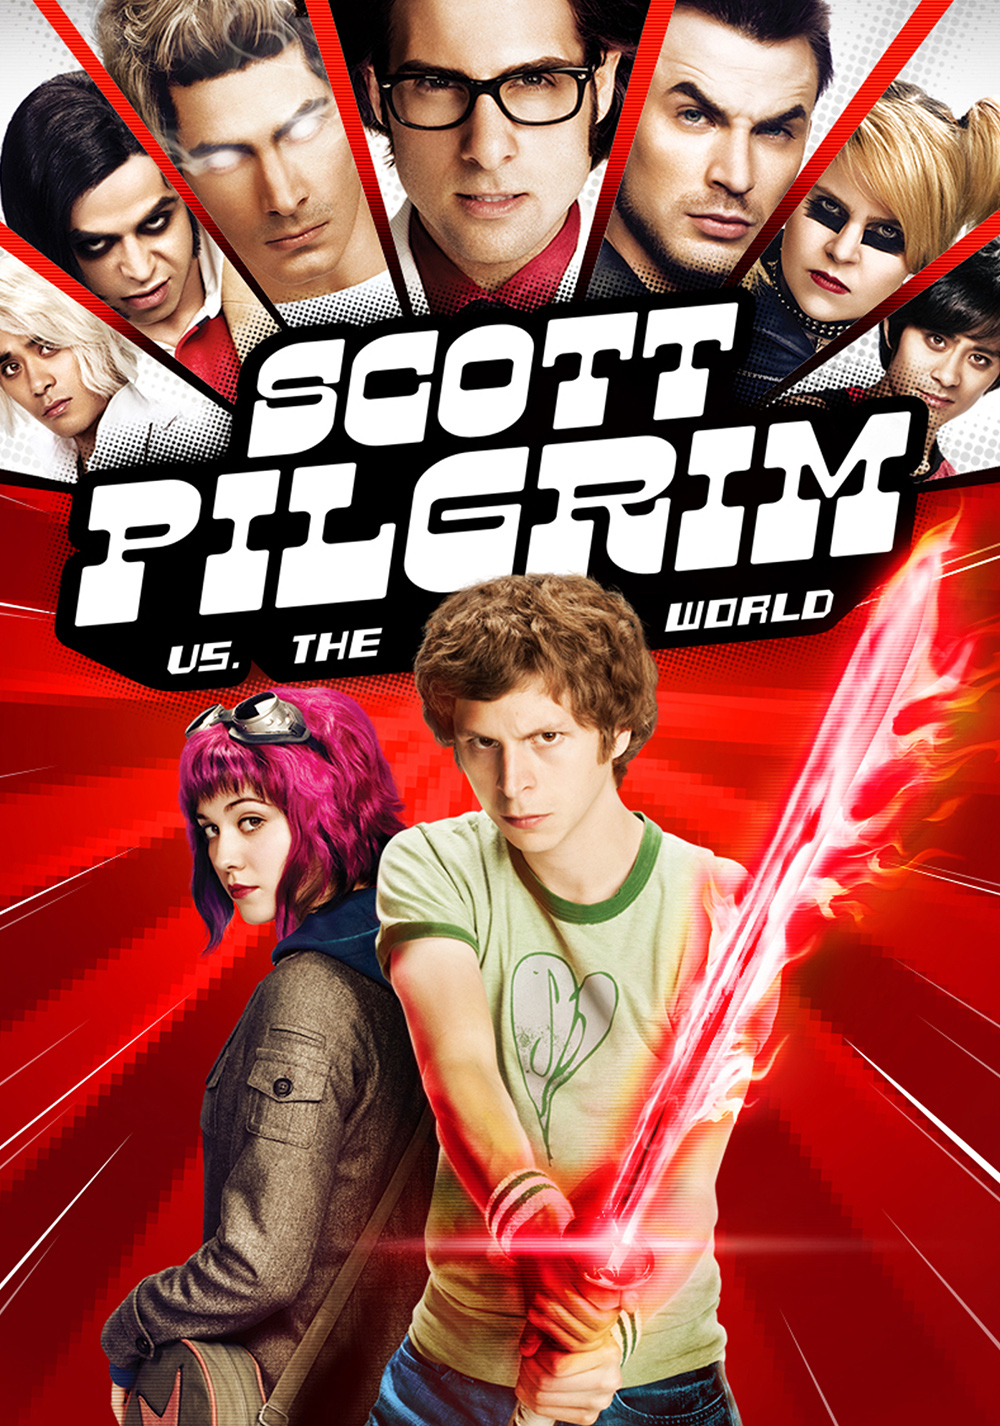 Image result for scott pilgrim vs the world movie poster